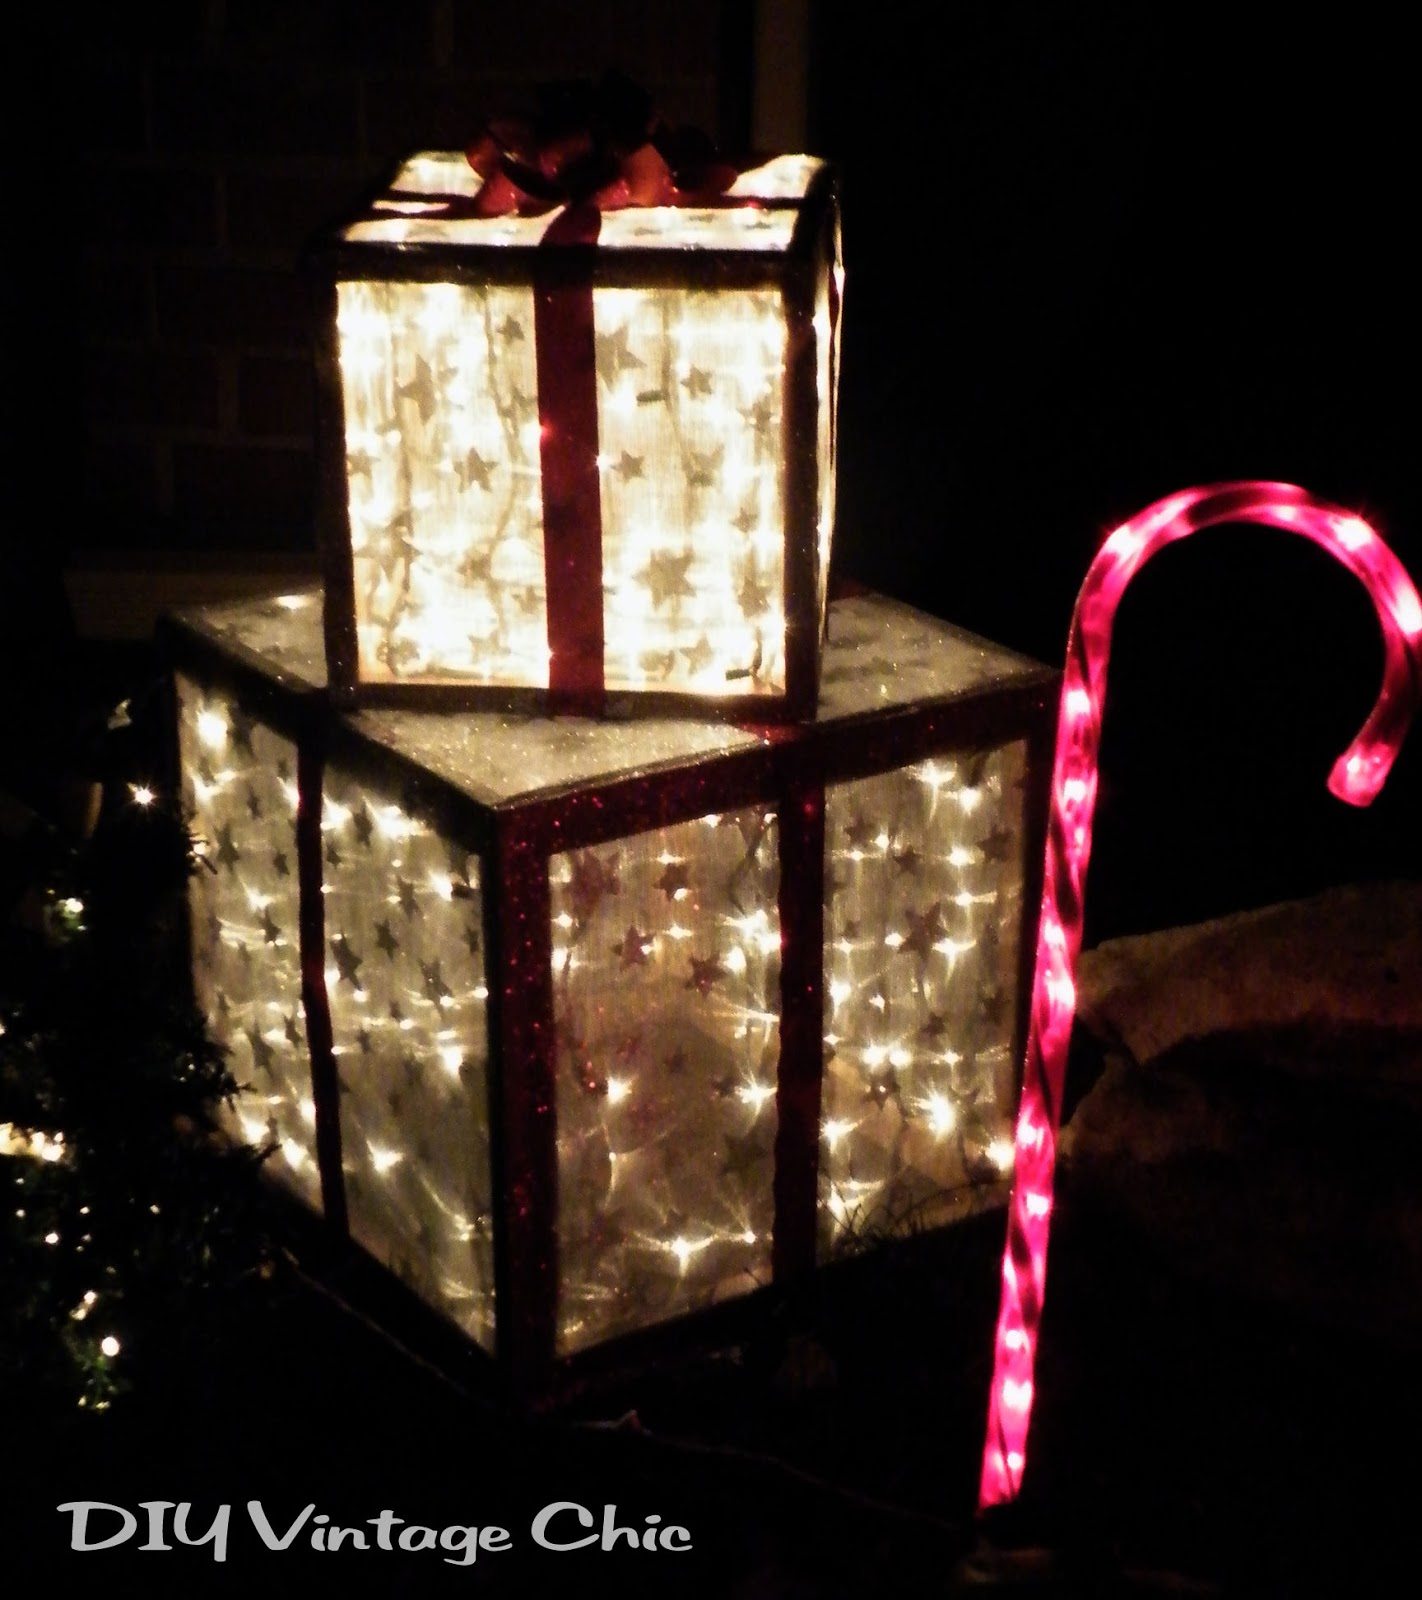 Diy vintage chic how to make lighted christmas presents for Outdoor light up ornaments